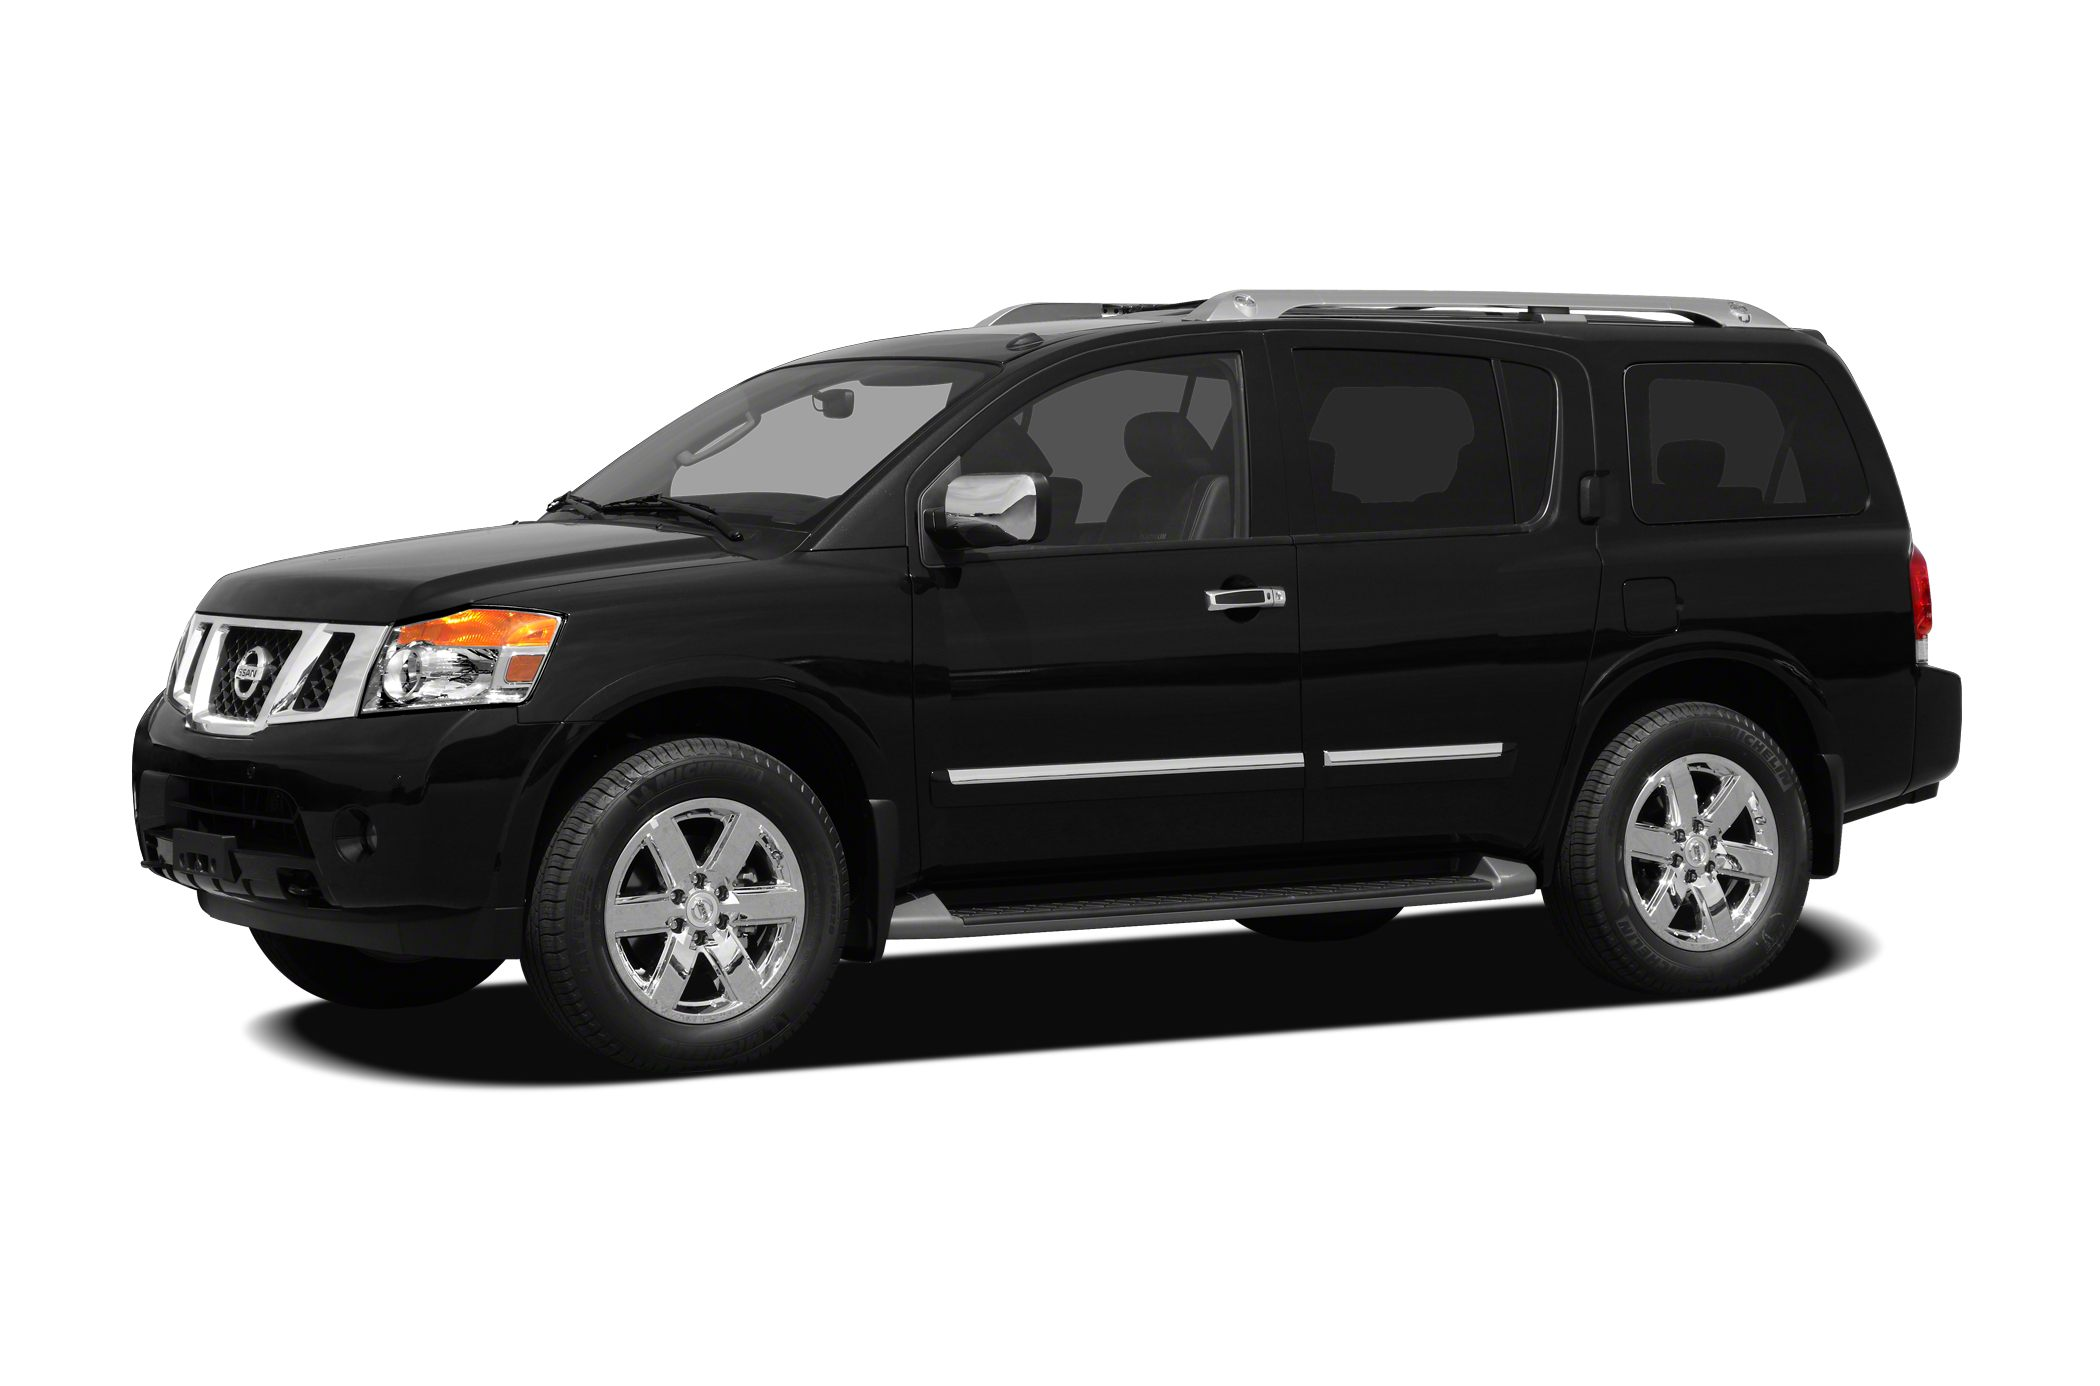 2012 Nissan Armada Platinum Miles 34210Color Gray Stock 15MU240A VIN 5N1BA0ND7CN618775